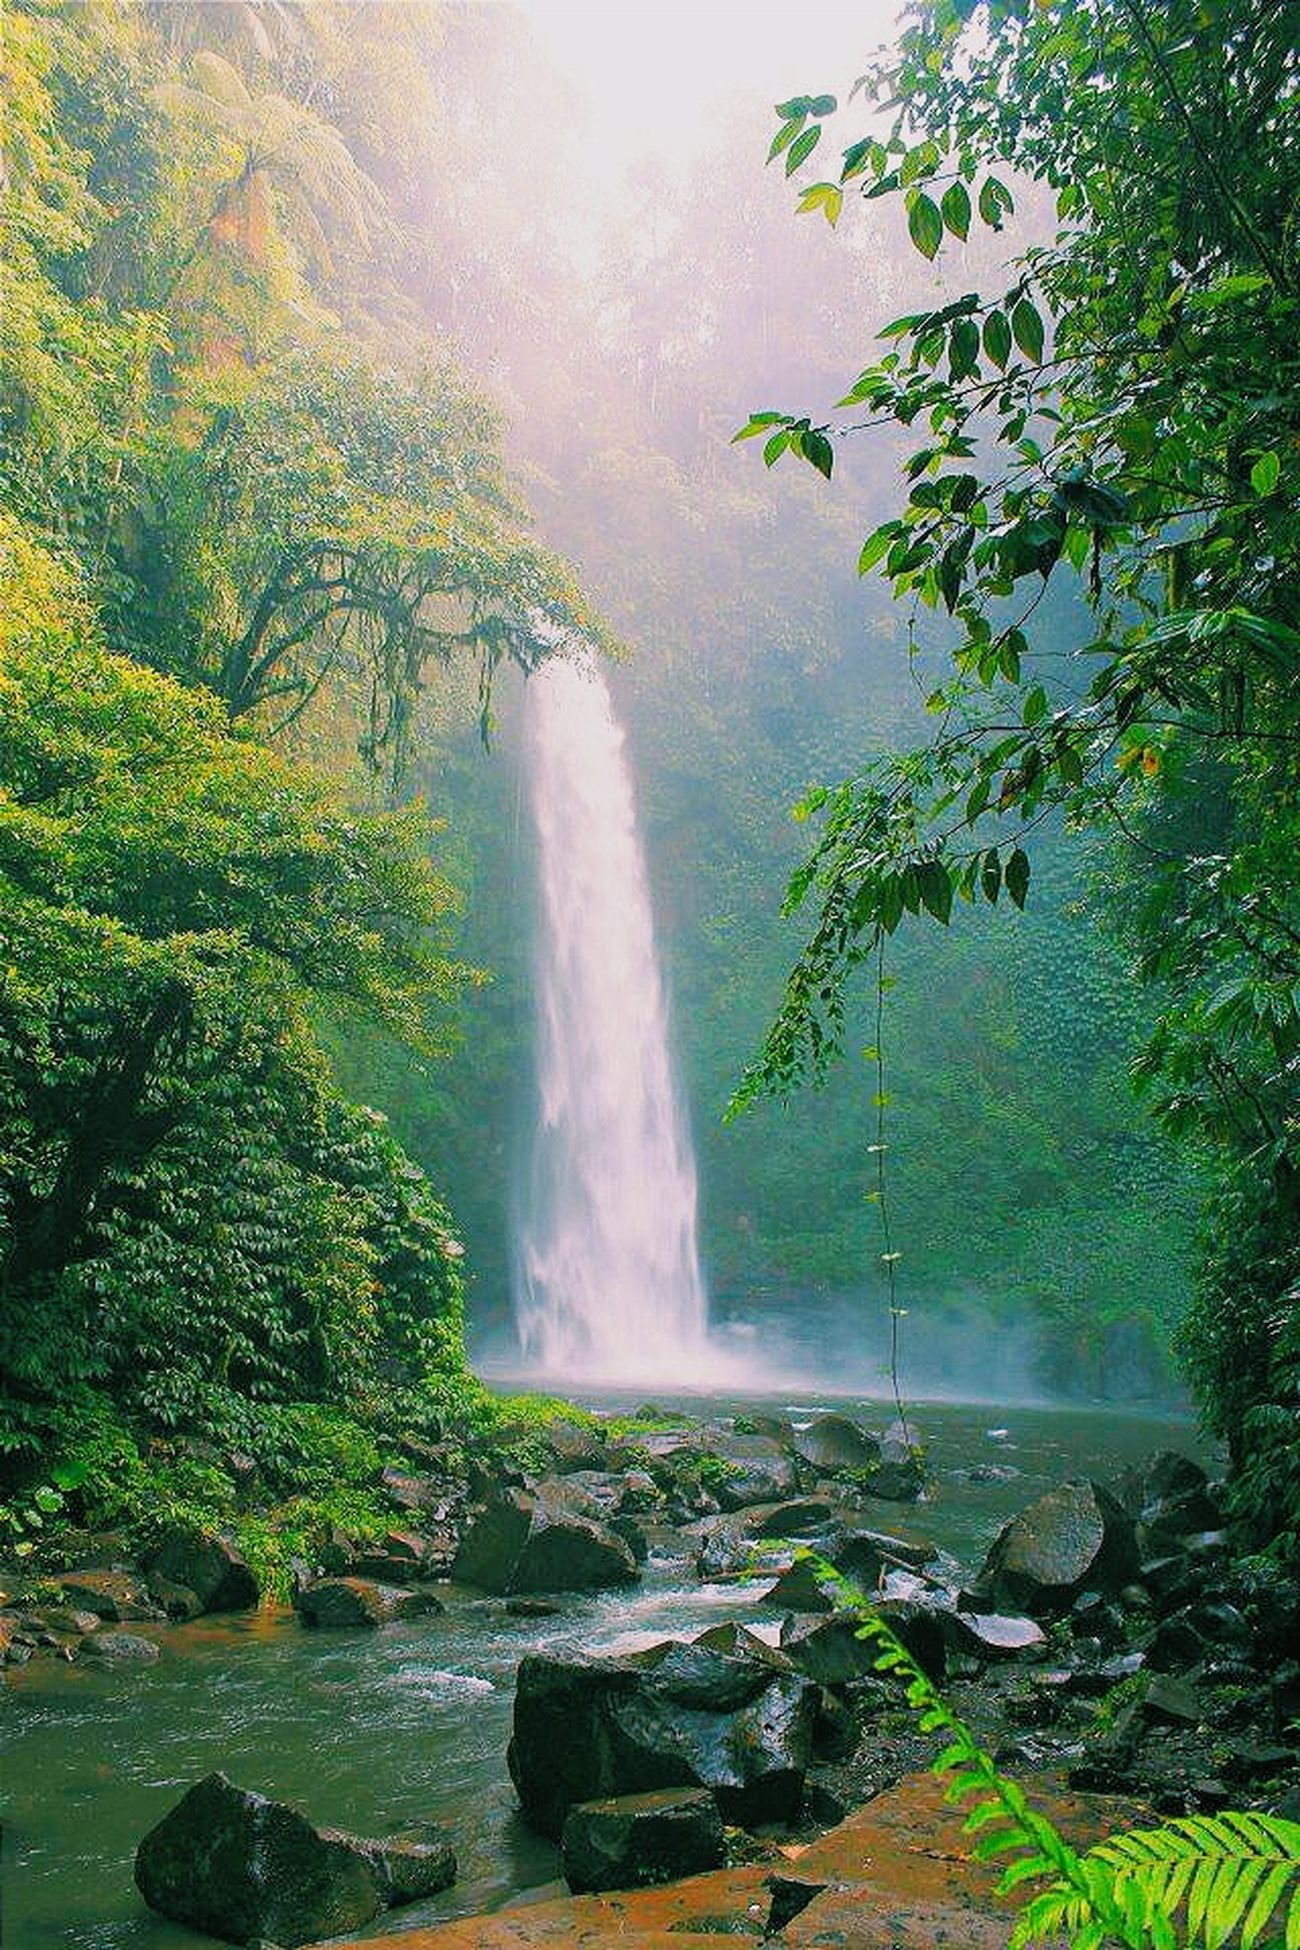 wooahhh... Amazing Waterfall in Bali I Love BALI Beautiful Place EyeEm Indonesia Eye For Photography EyeEm Nature Lover My Trip My Adventure